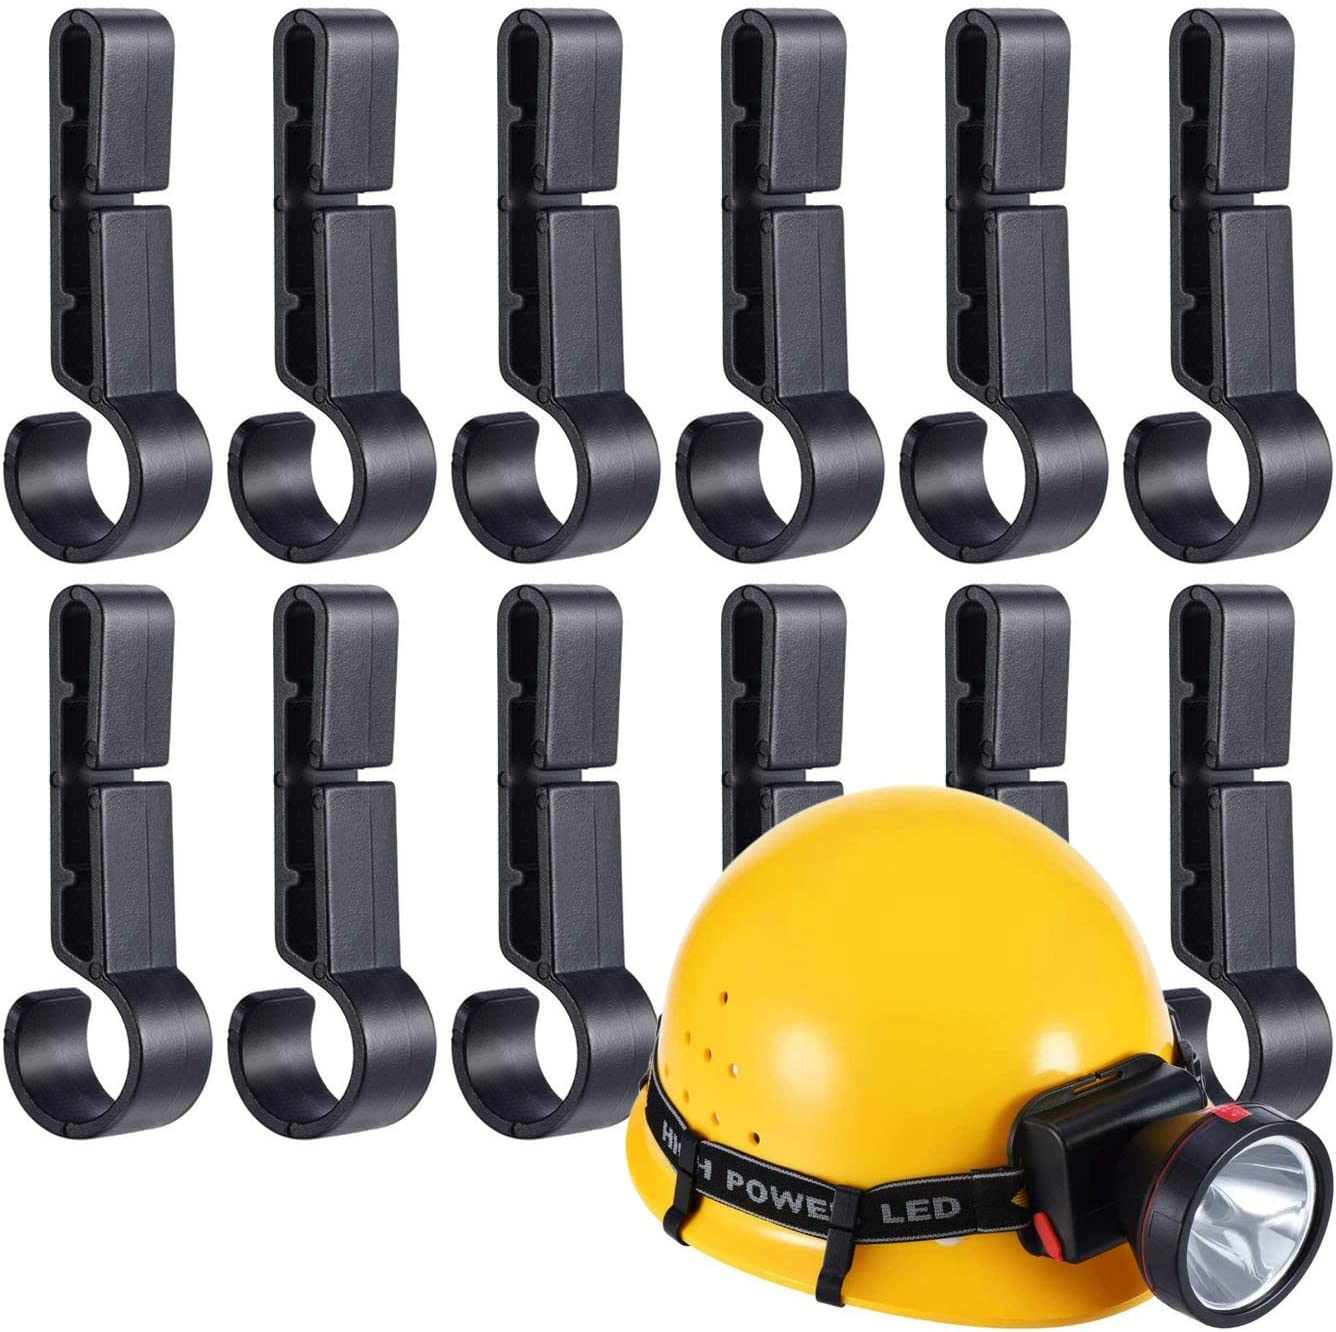 AnFun 12 Pieces Helmet Headlamp Hooks Hardhat Clips for Various Helmets,Safety Cap,Hardhat